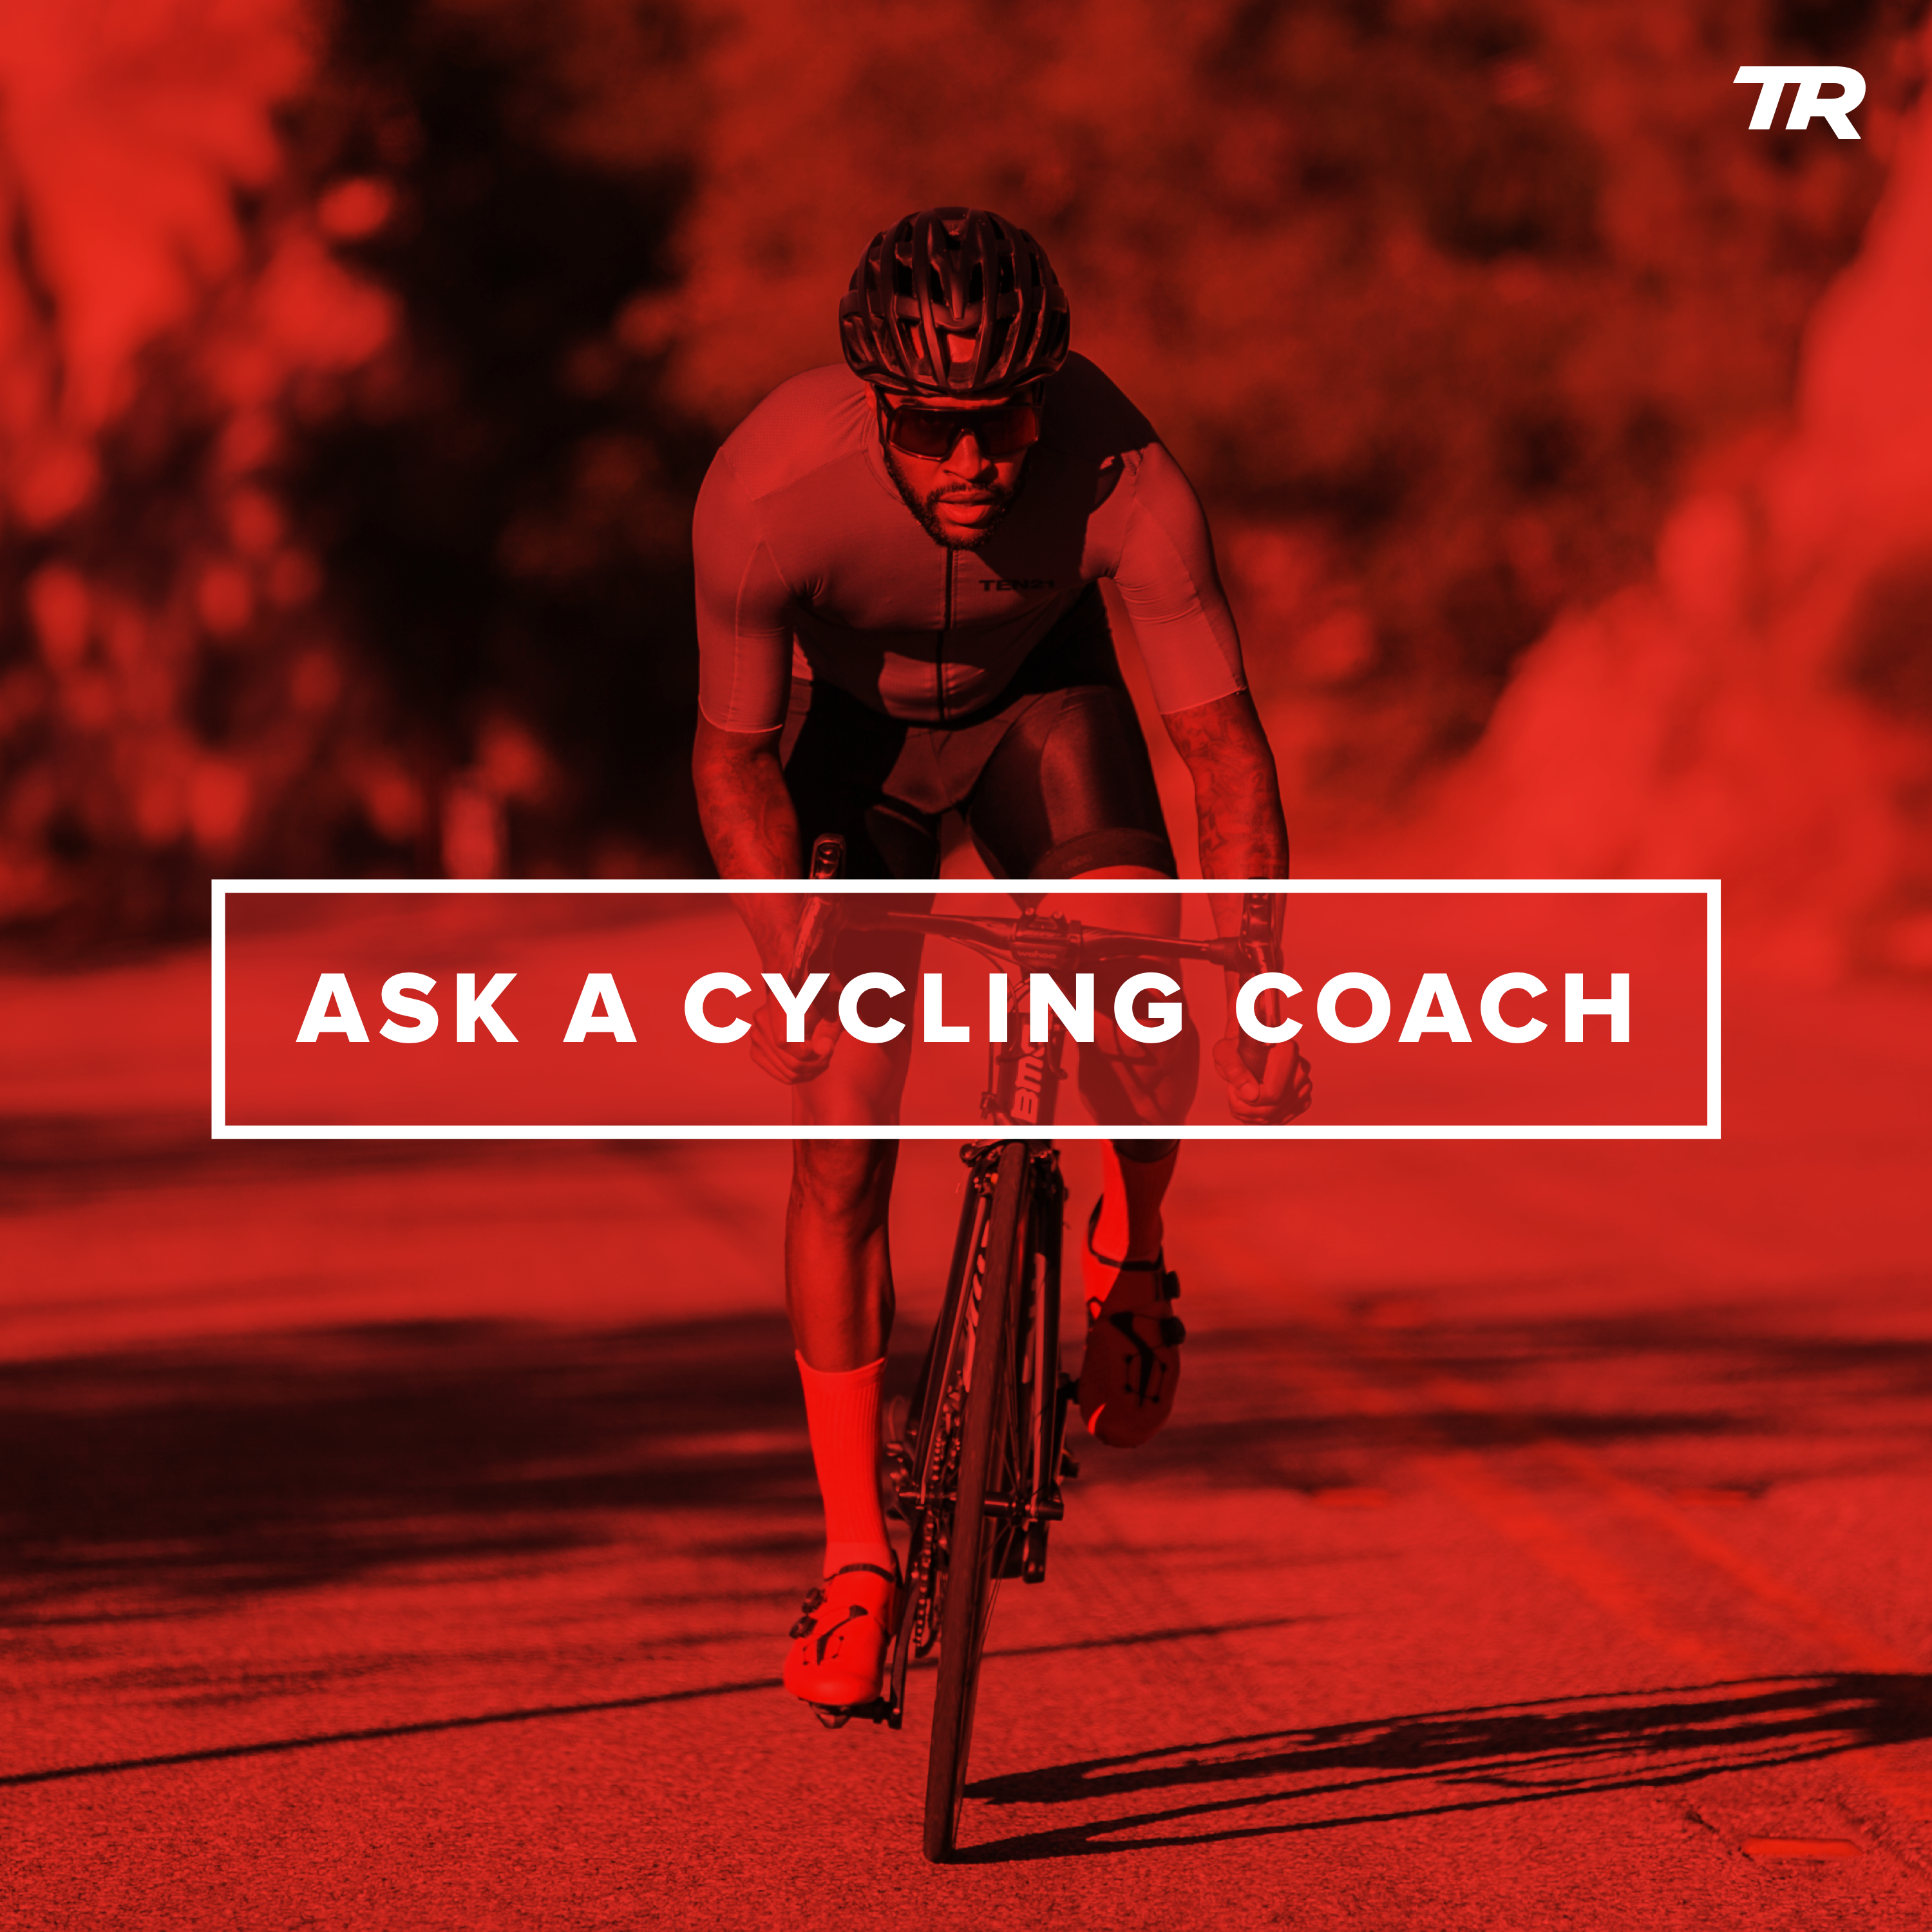 Metabolic Efficiency, Marking Riders, Sustained Power and More – Ask a Cycling Coach 314